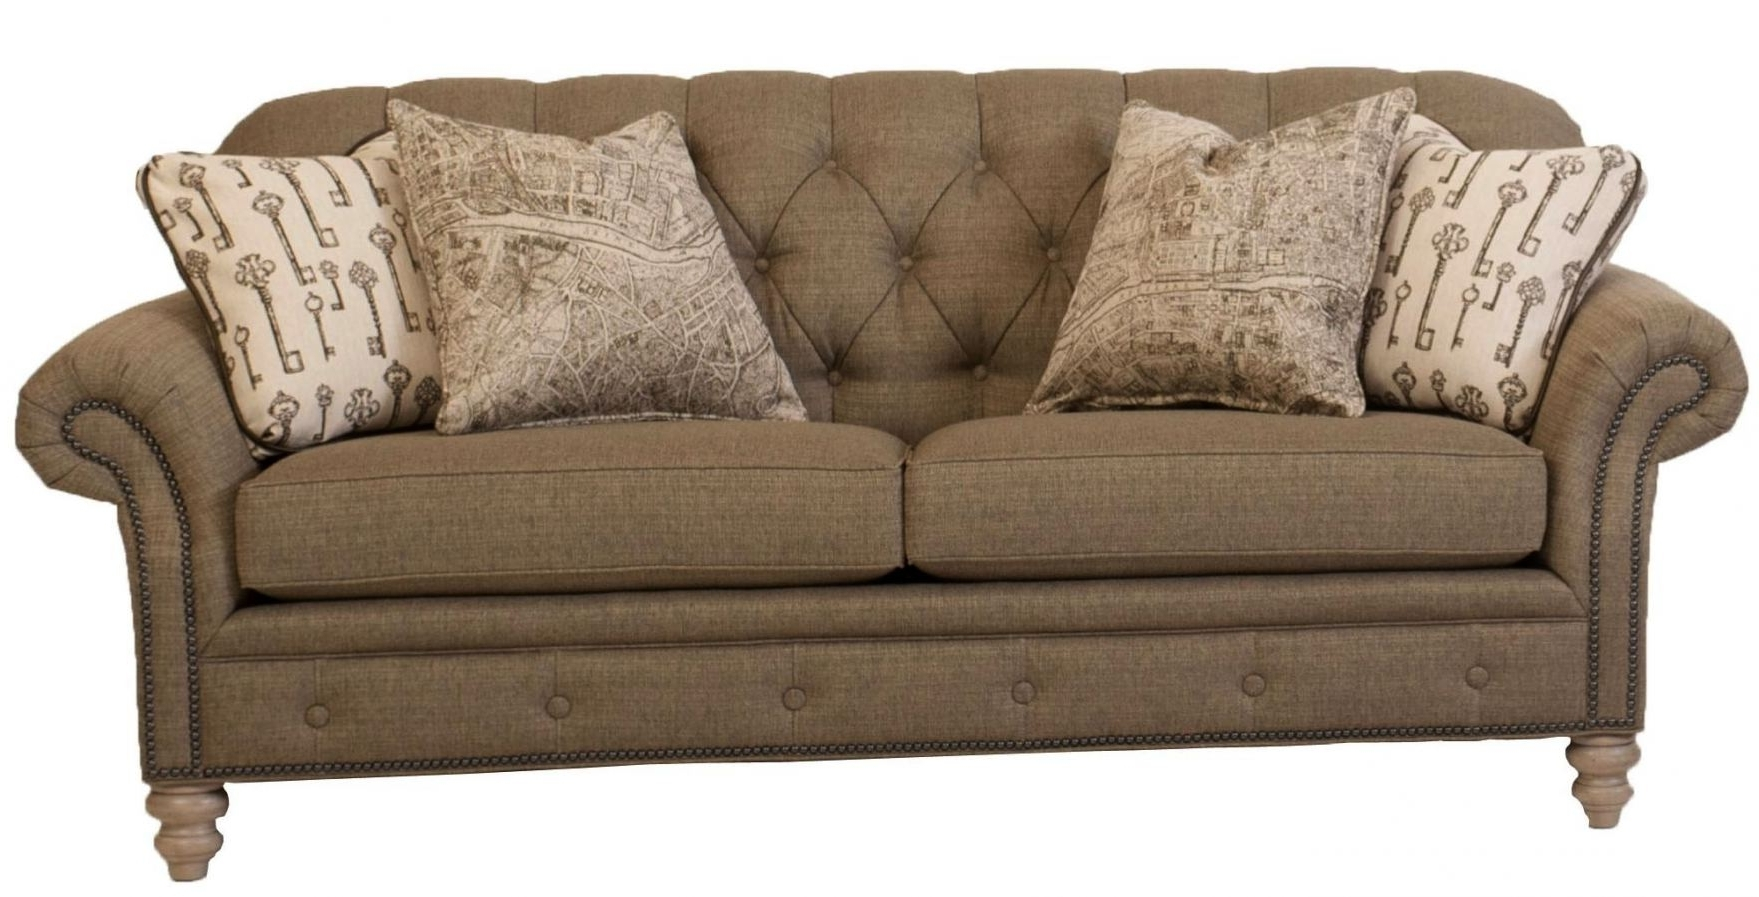 Trendy Fresh Sectional Sofa With Nailhead Trim 64 For Your Sofas And Throughout Sectional Sofas With Nailhead Trim (View 19 of 20)